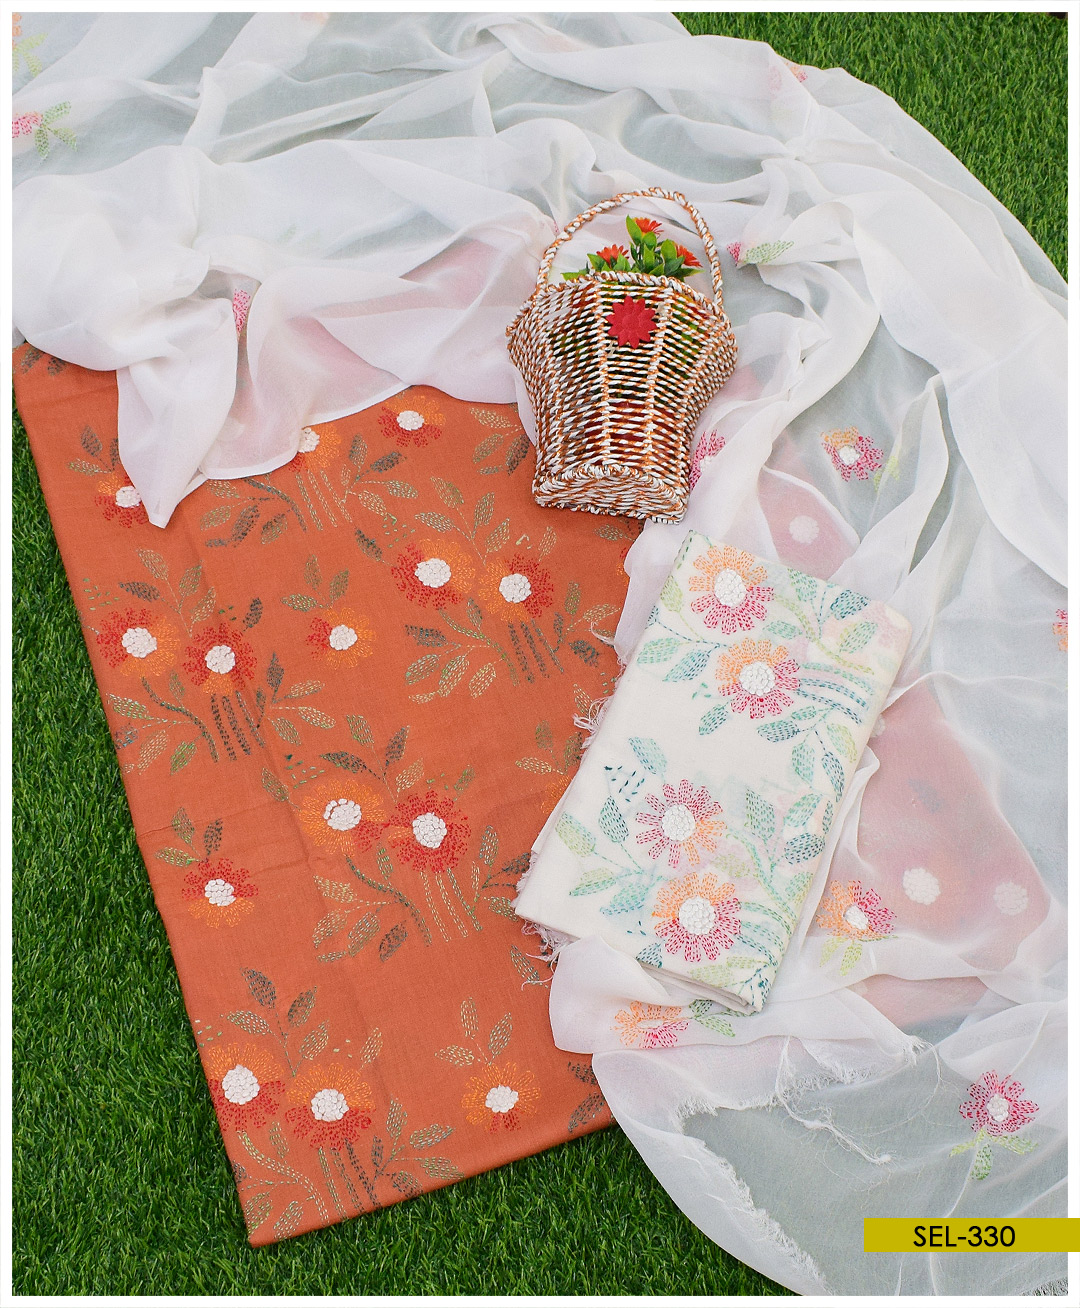 3 PCs Lawn Hand Embroidered Kachaboor Work Suits With Chiffon Dupatta - SEL330